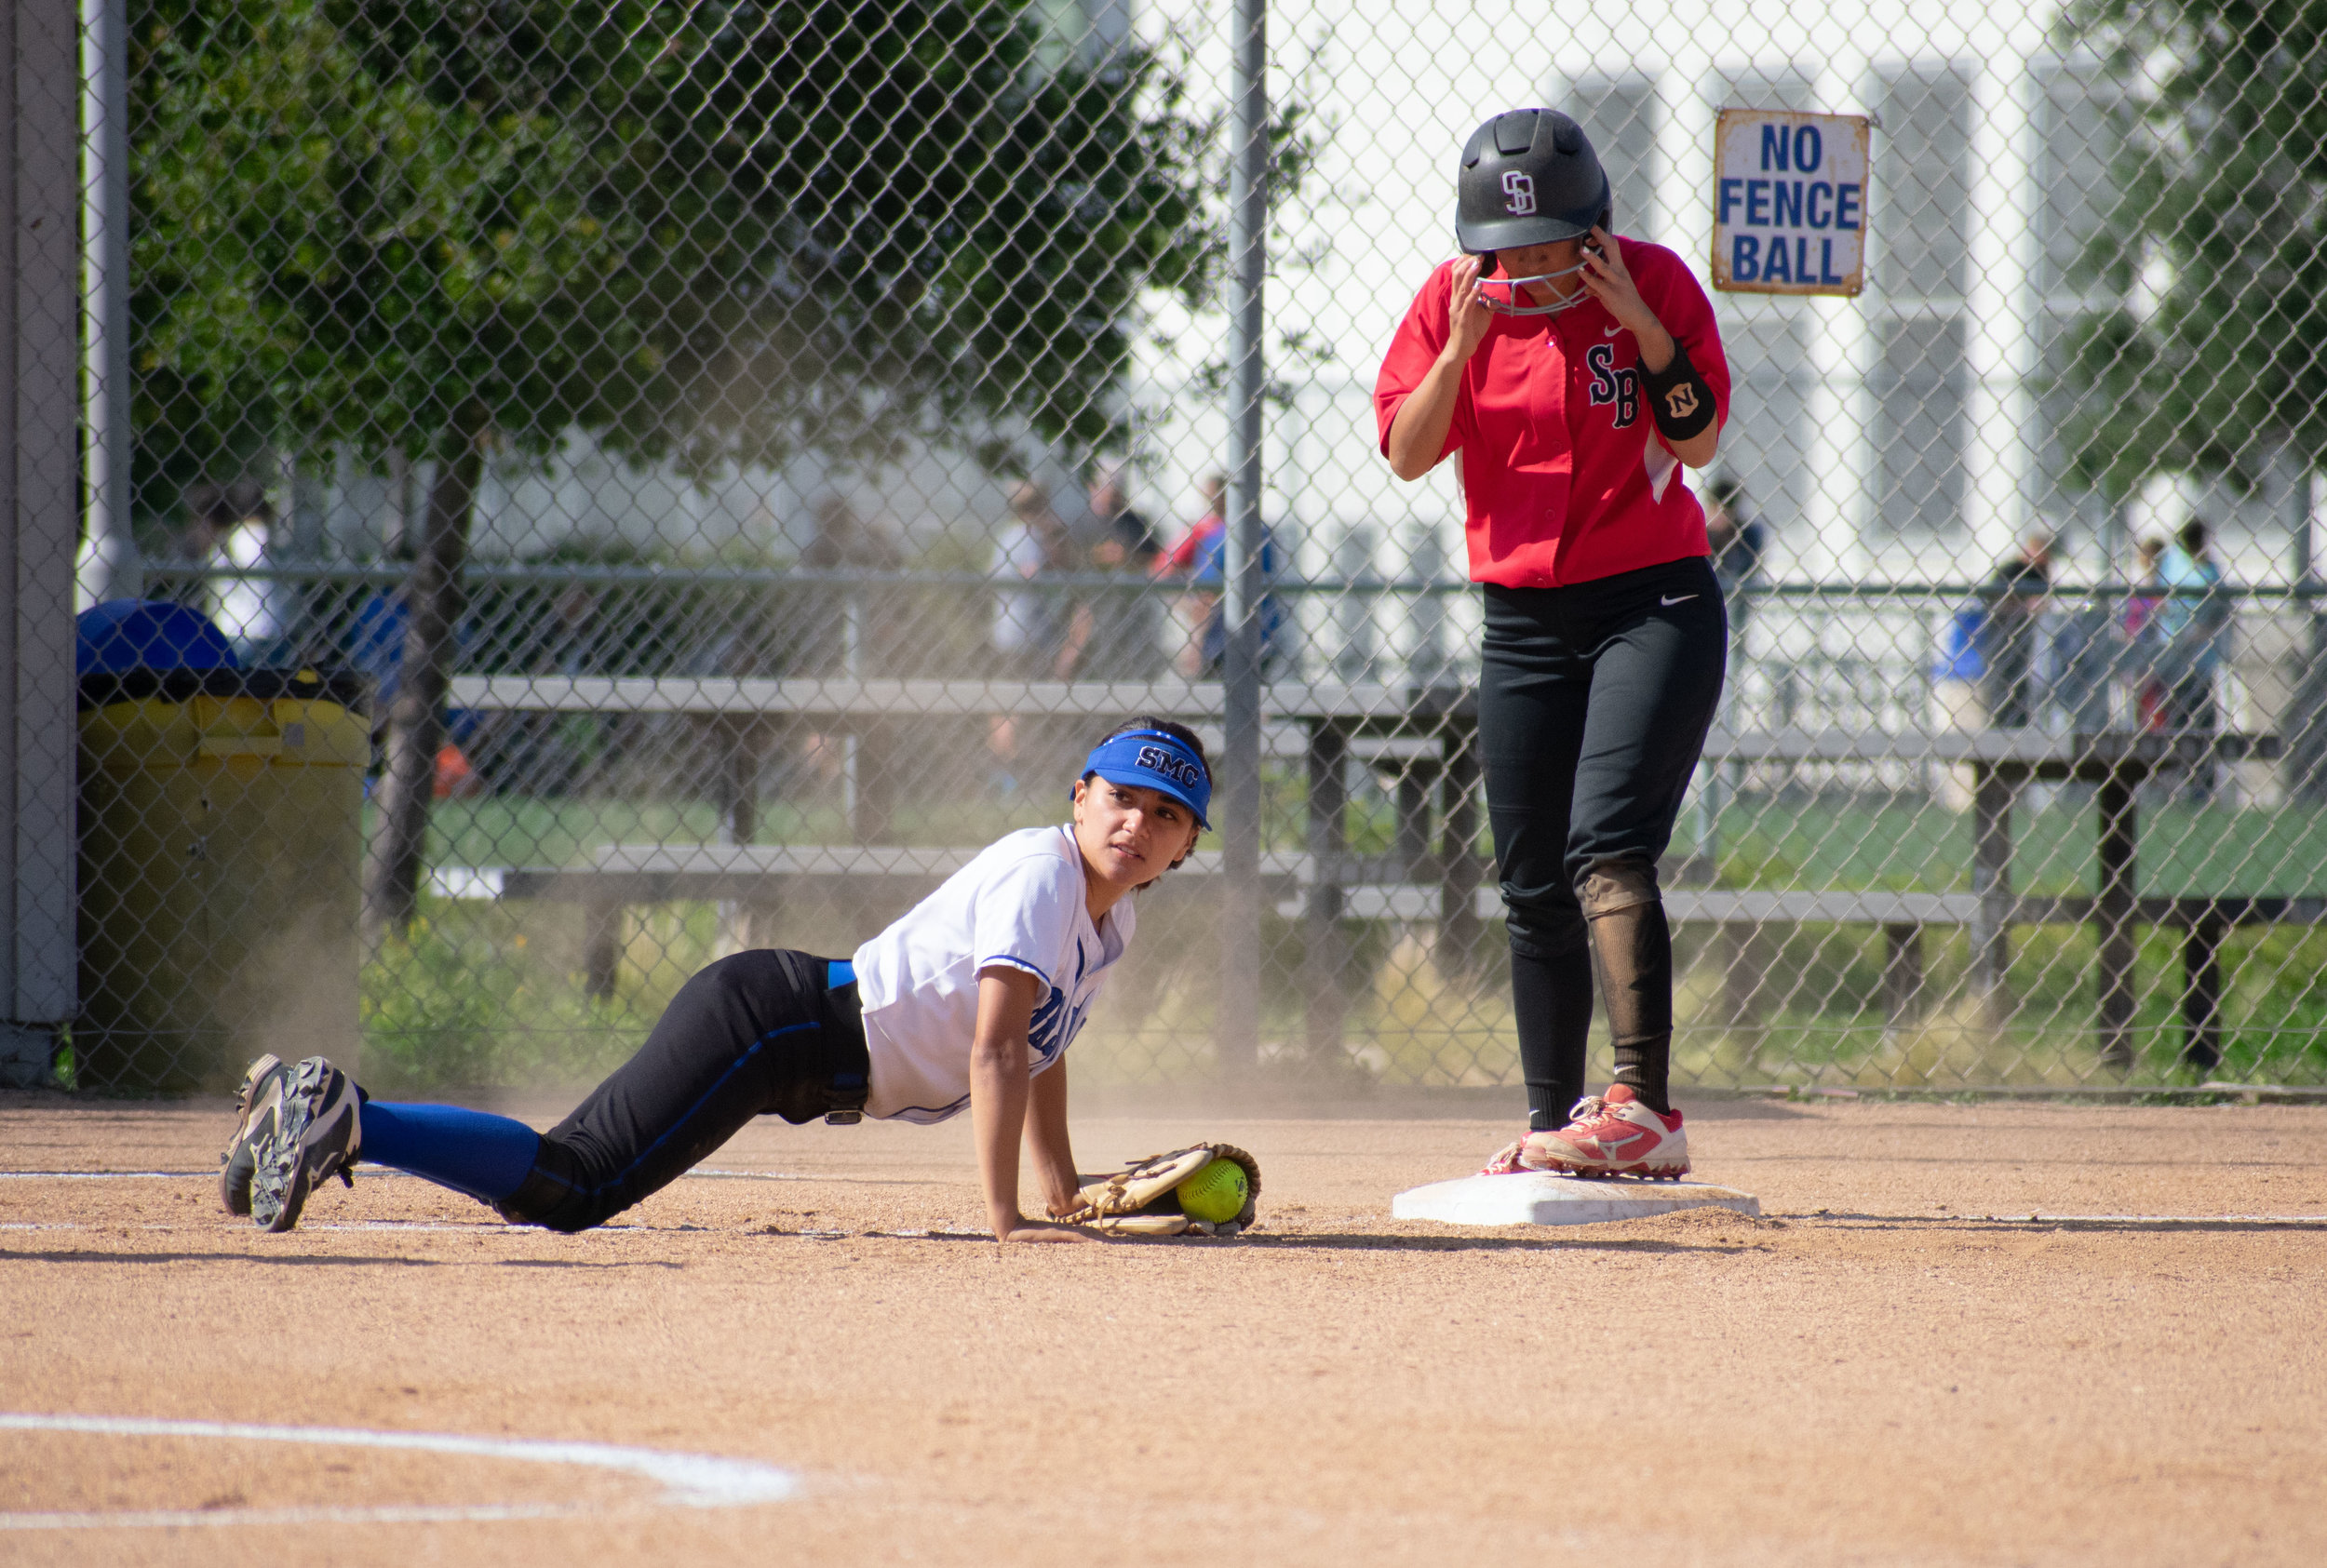 Santa Monica College Corsair Briana Osuna (#10) fails to defend third base during the final game of the season against the Santa Barbara Vaqueros on Friday, April 20, 2018 at the John Adams Middle School Field in Santa Monica, California. The game was a 7-1 loss for the Corsairs, ending the season with an 8-21 record. (Ethan Lauren/Corsair Photo)